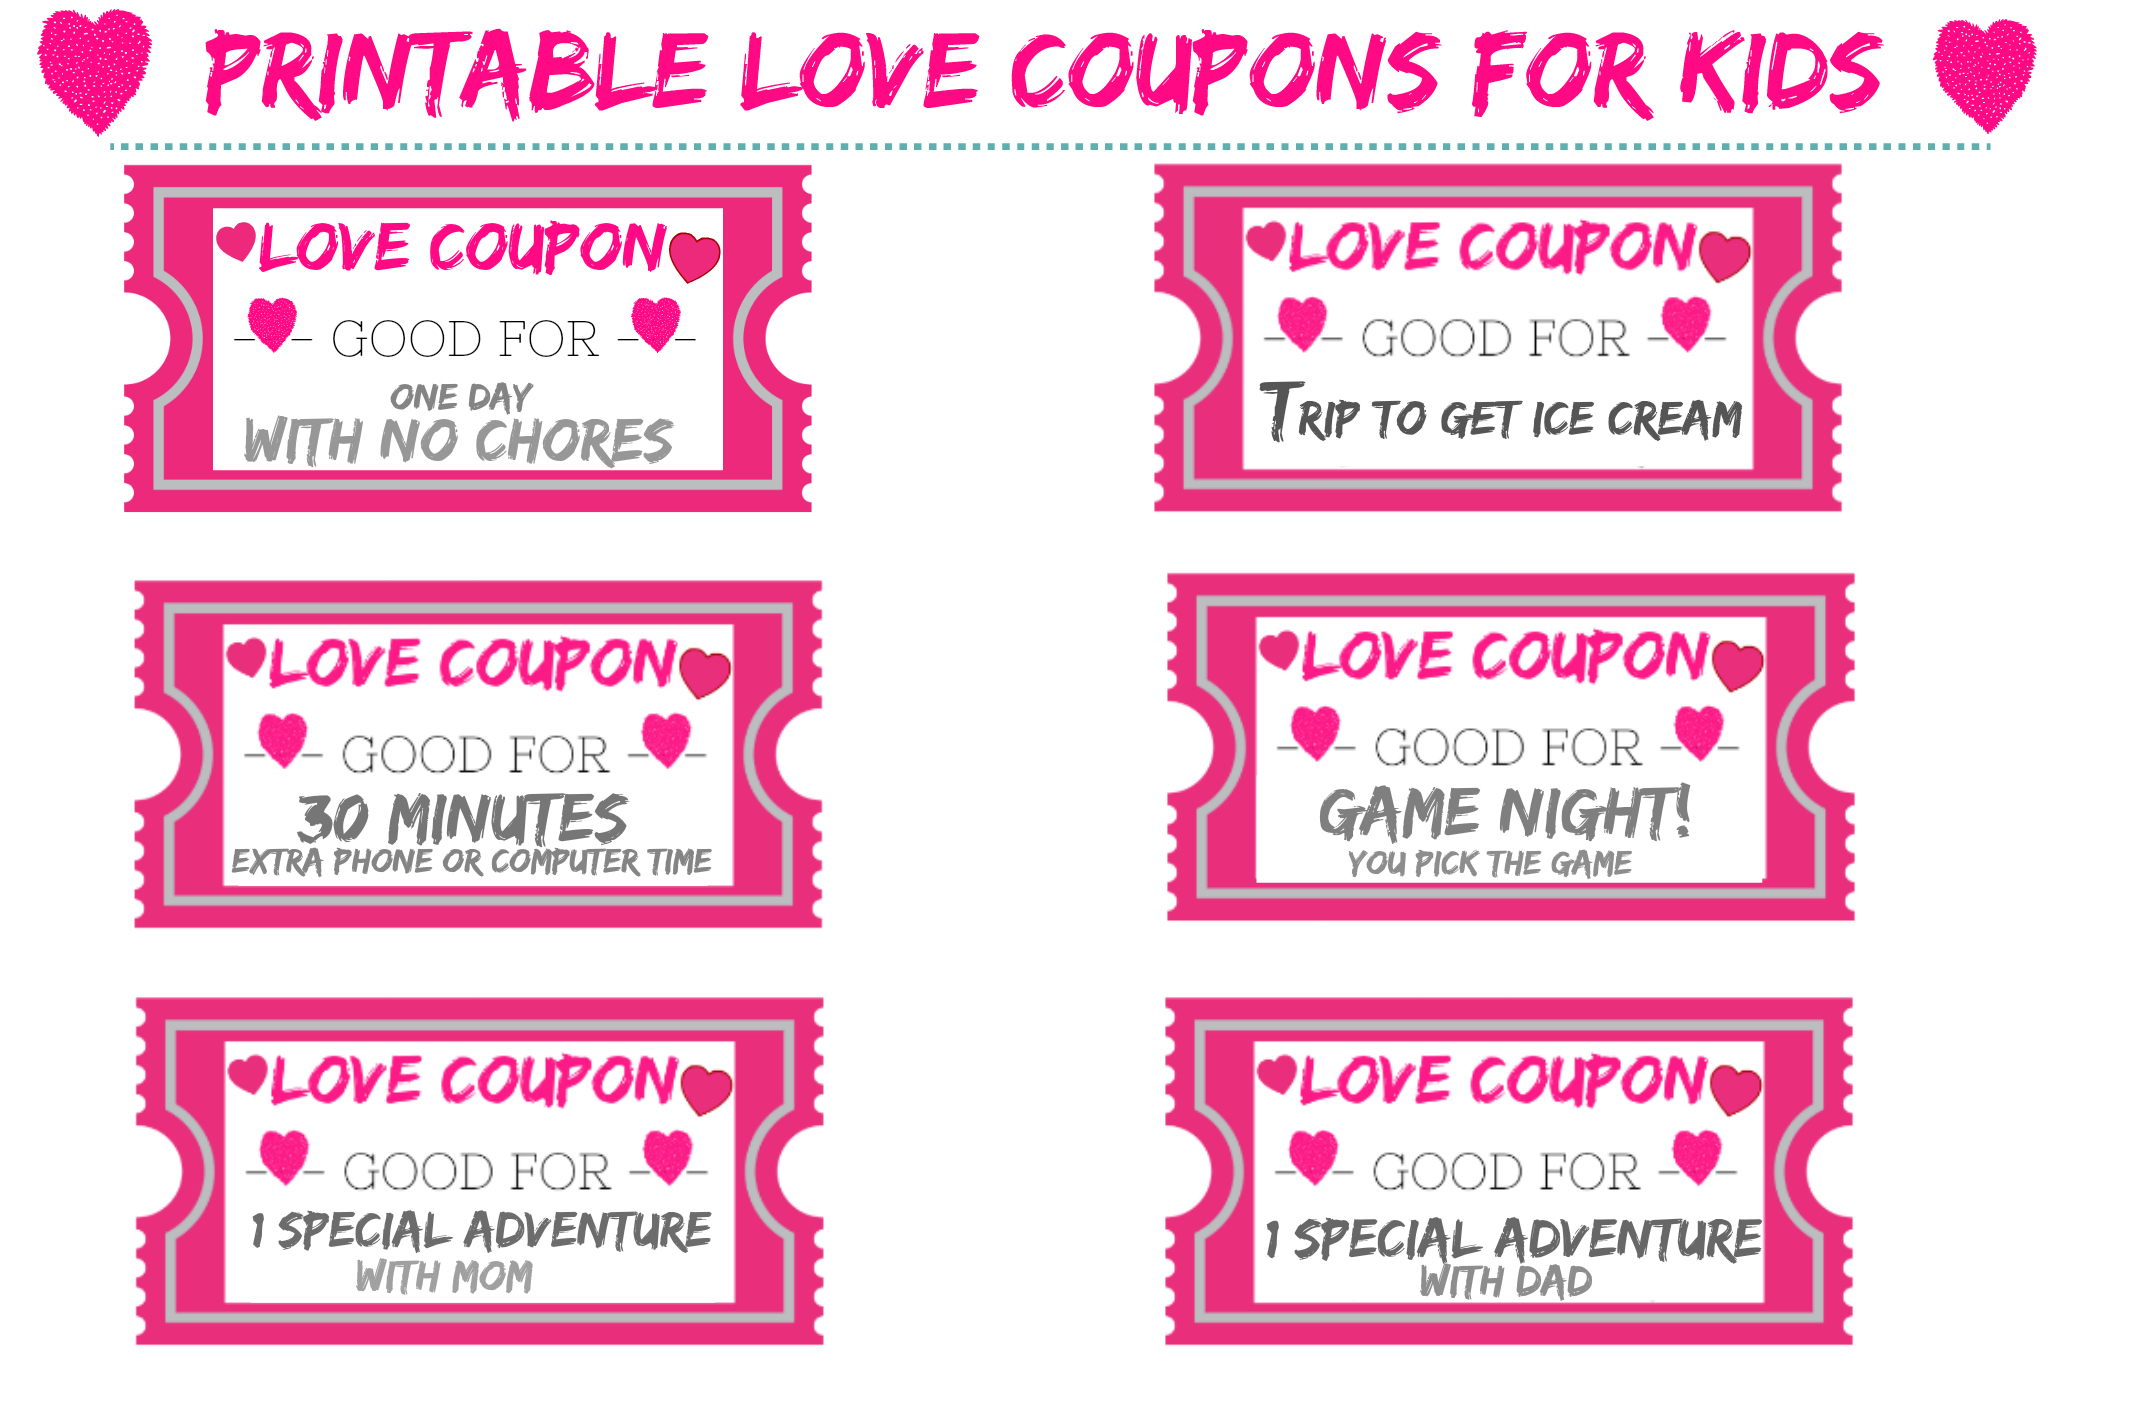 graphic about Printable Coupons for Kids called printable get pleasure from discount coupons for children for valentines working day Our